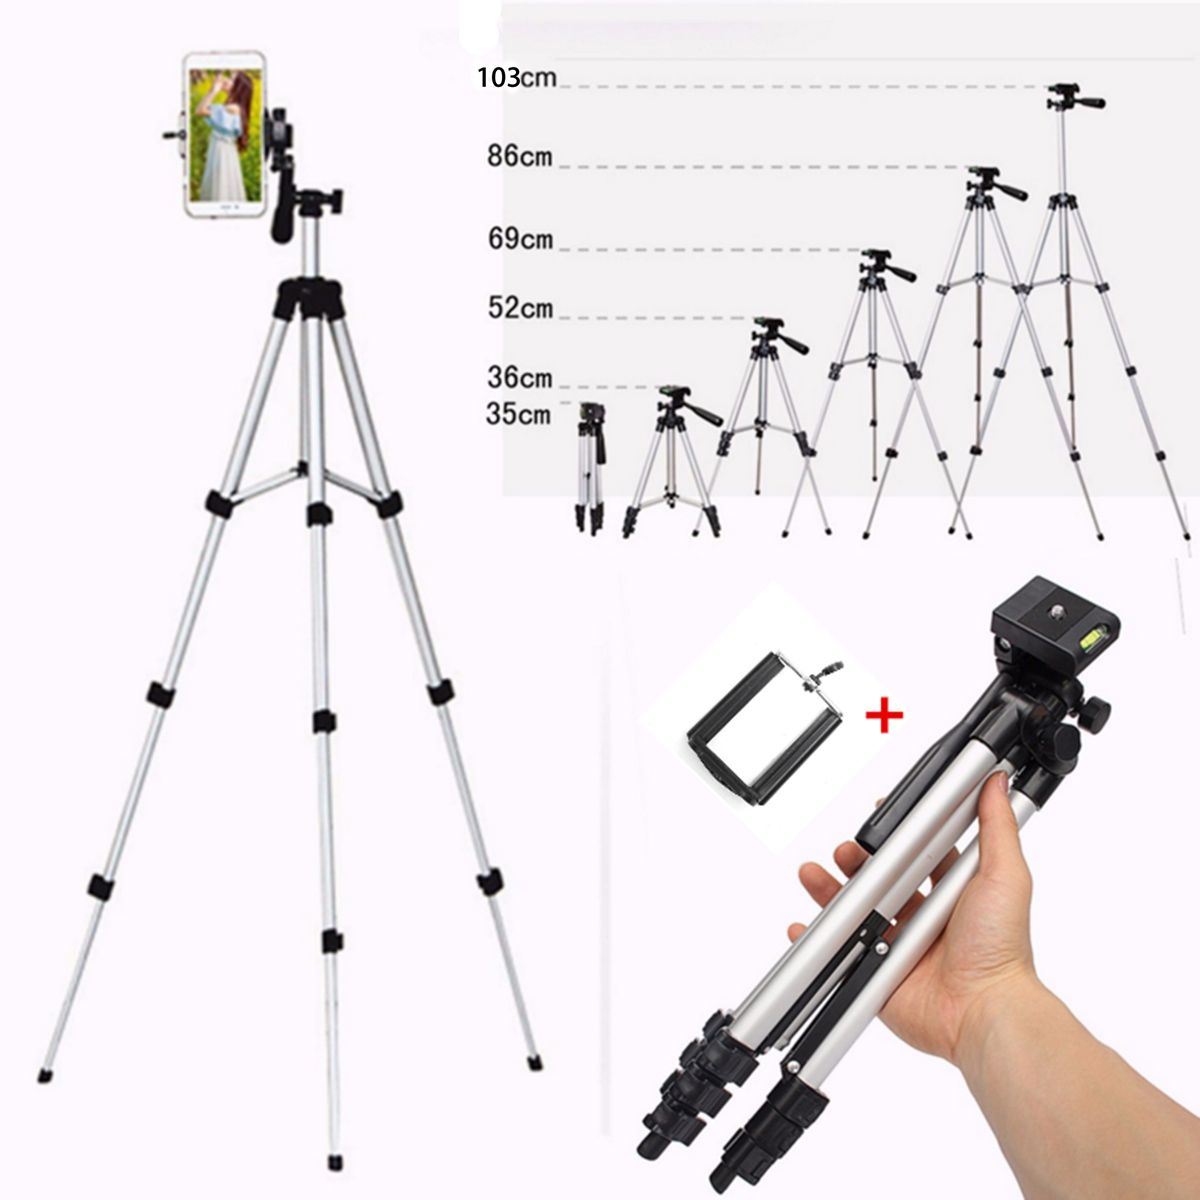 Extendable Mobile Smart Phone Digital Camera Tripod Stand Mount Holder Clip Set For Nikon for Canon for iPhone 6 6s 7